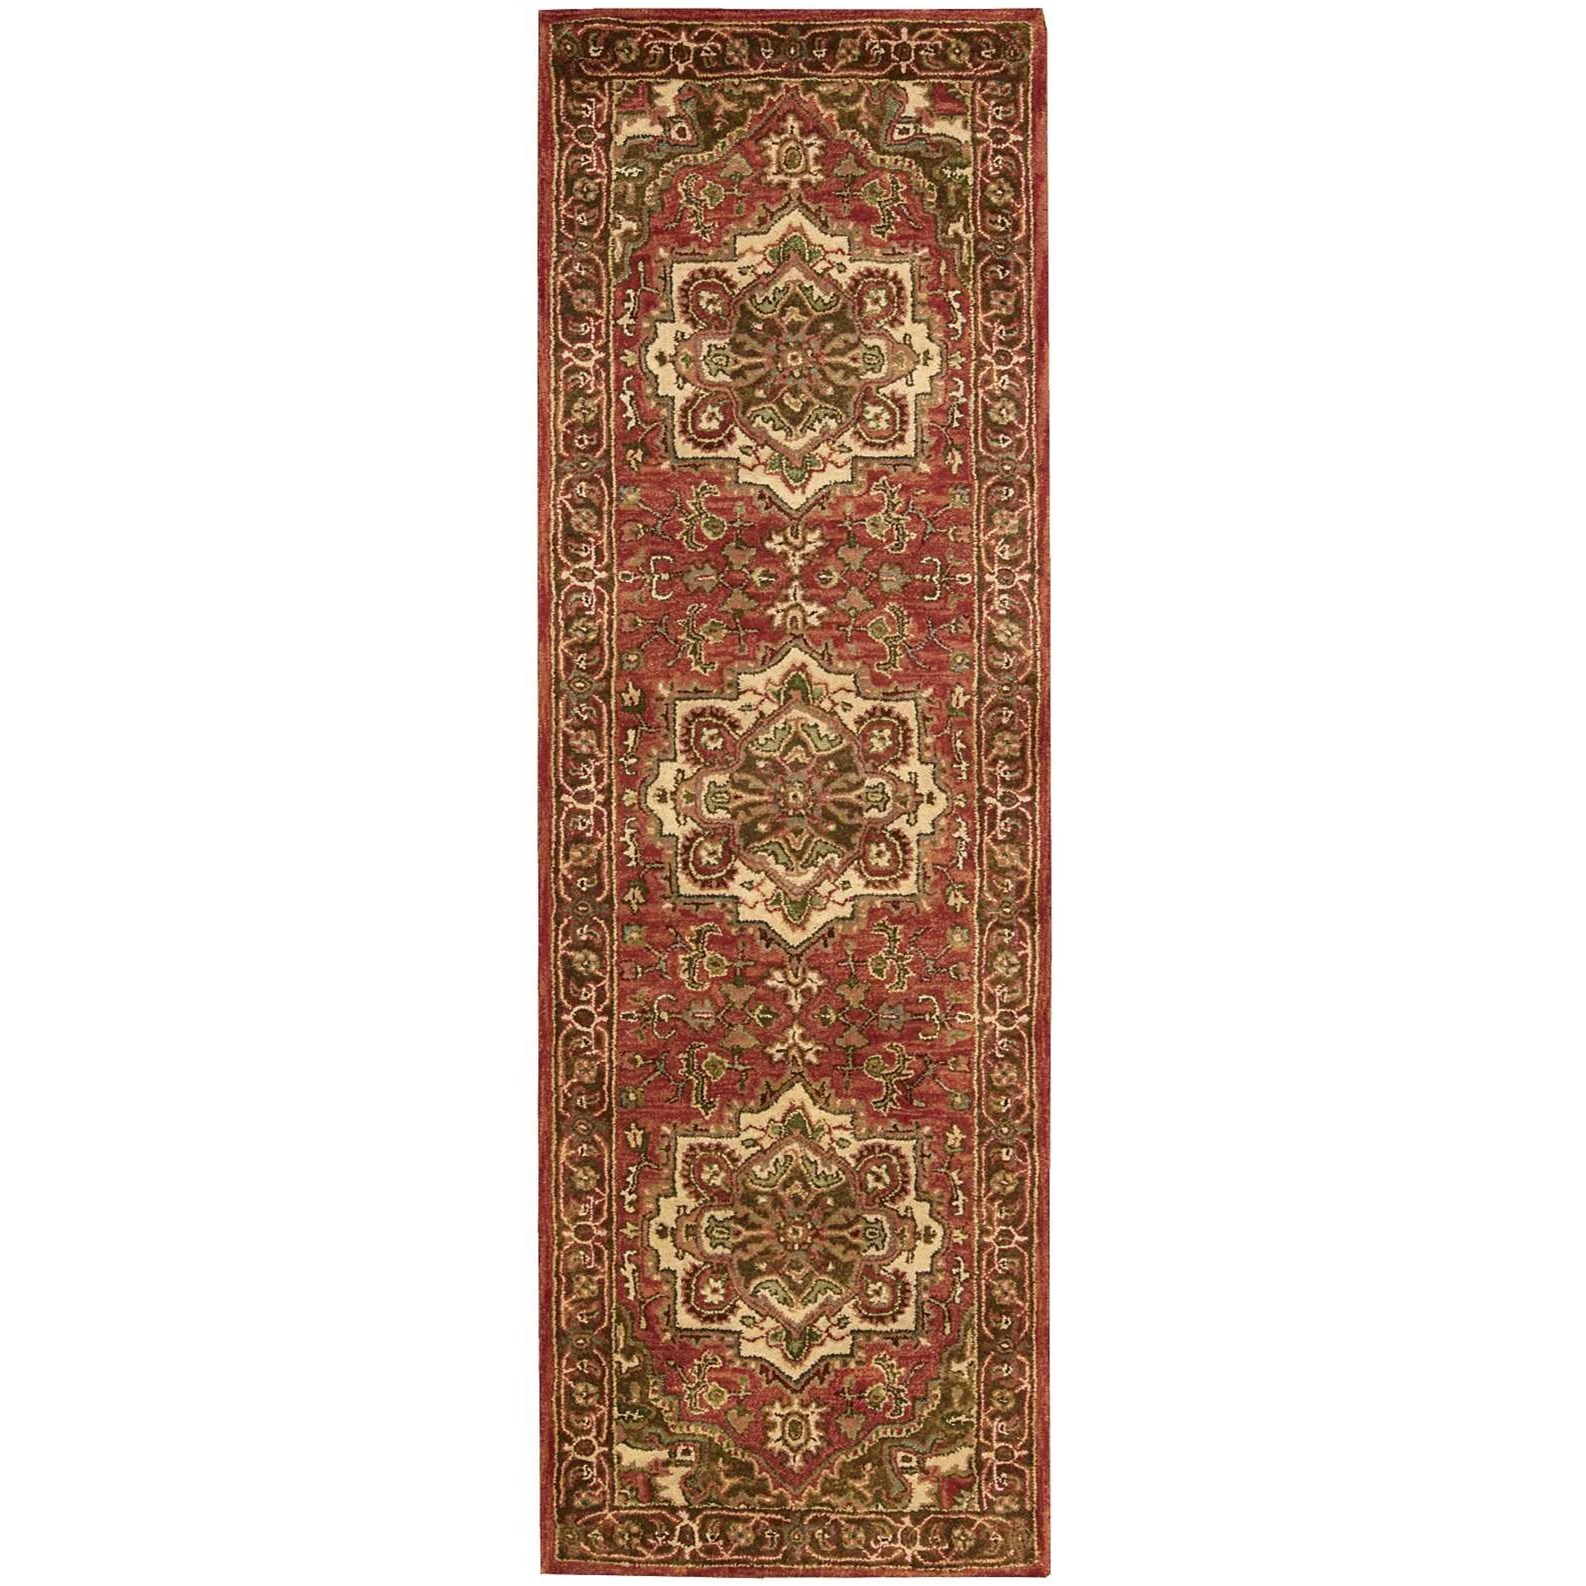 """Jaipur 2'4"""" x 8' Red Runner Rug by Nourison at Home Collections Furniture"""